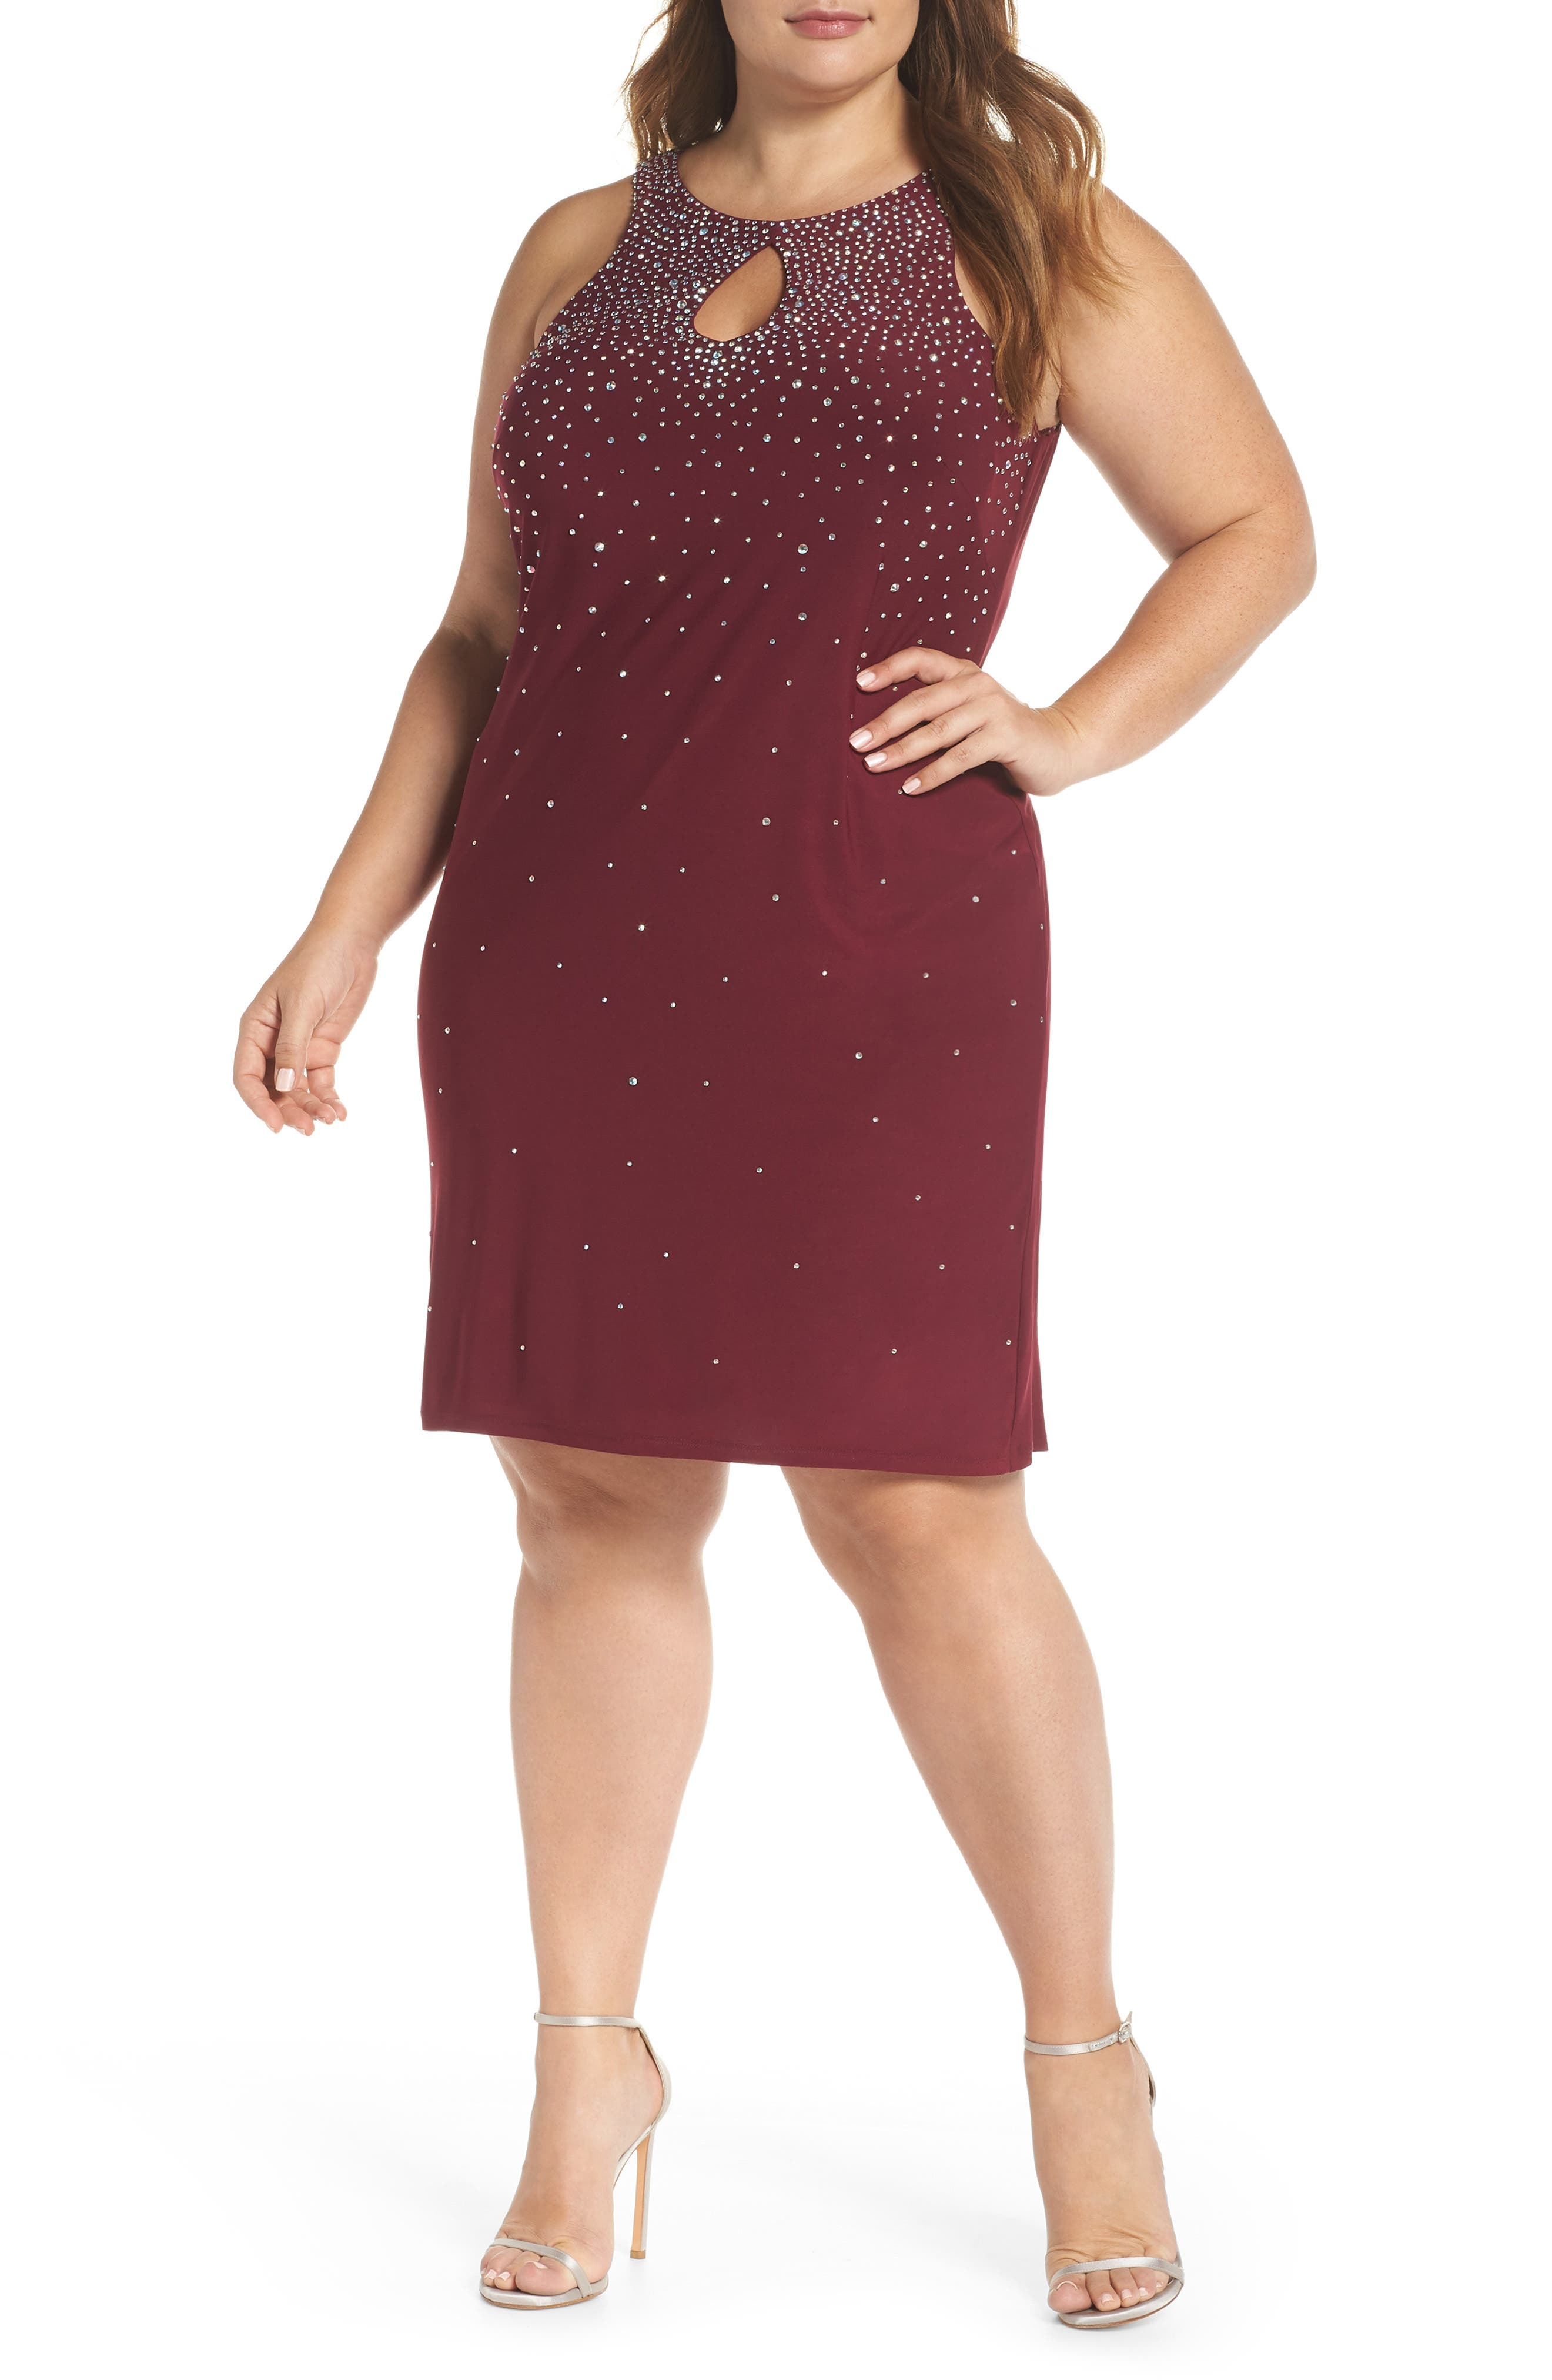 MORGAN & CO., Embellished Keyhole Neck Sheath Dress, Main thumbnail 1, color, MERLOT